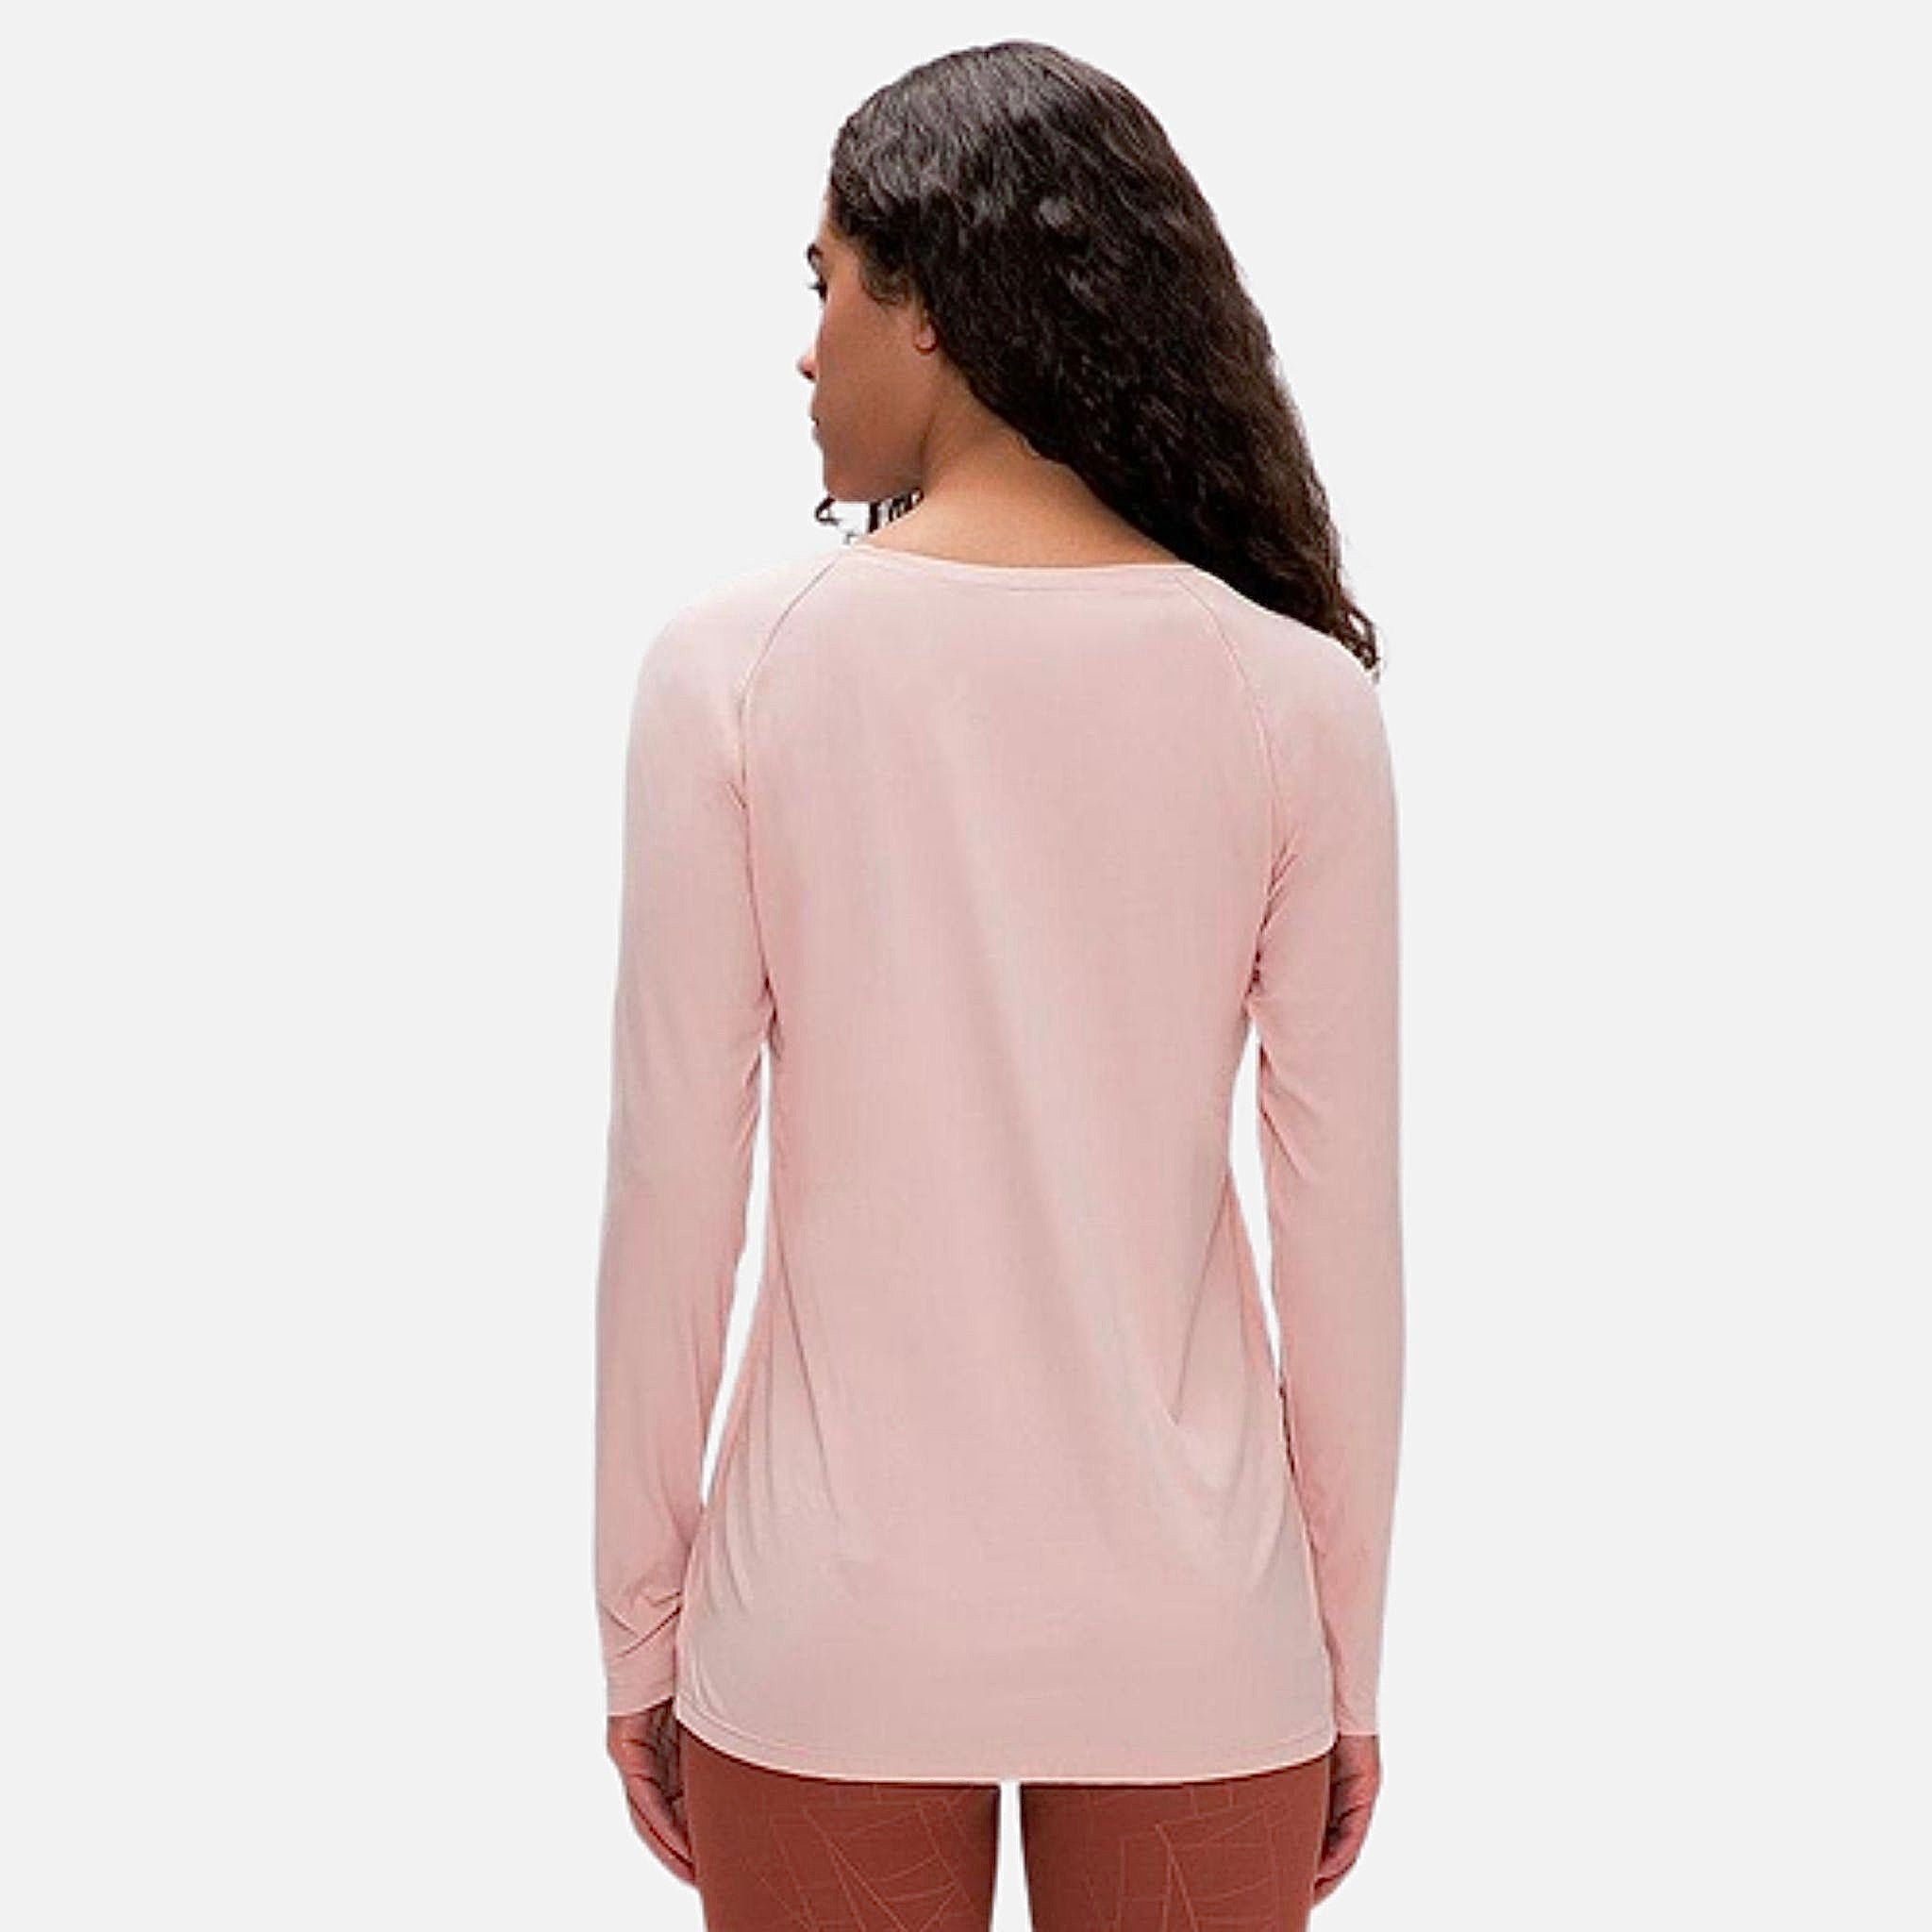 miFit QuickDry Boatneck T-Shirt     Long sleeved champagne powder pink color breathable lightweight loose quick dry naked-feel fabric Skin friendly Workout Yoga Running Sport Tops Women's T-Shirts Sportswear